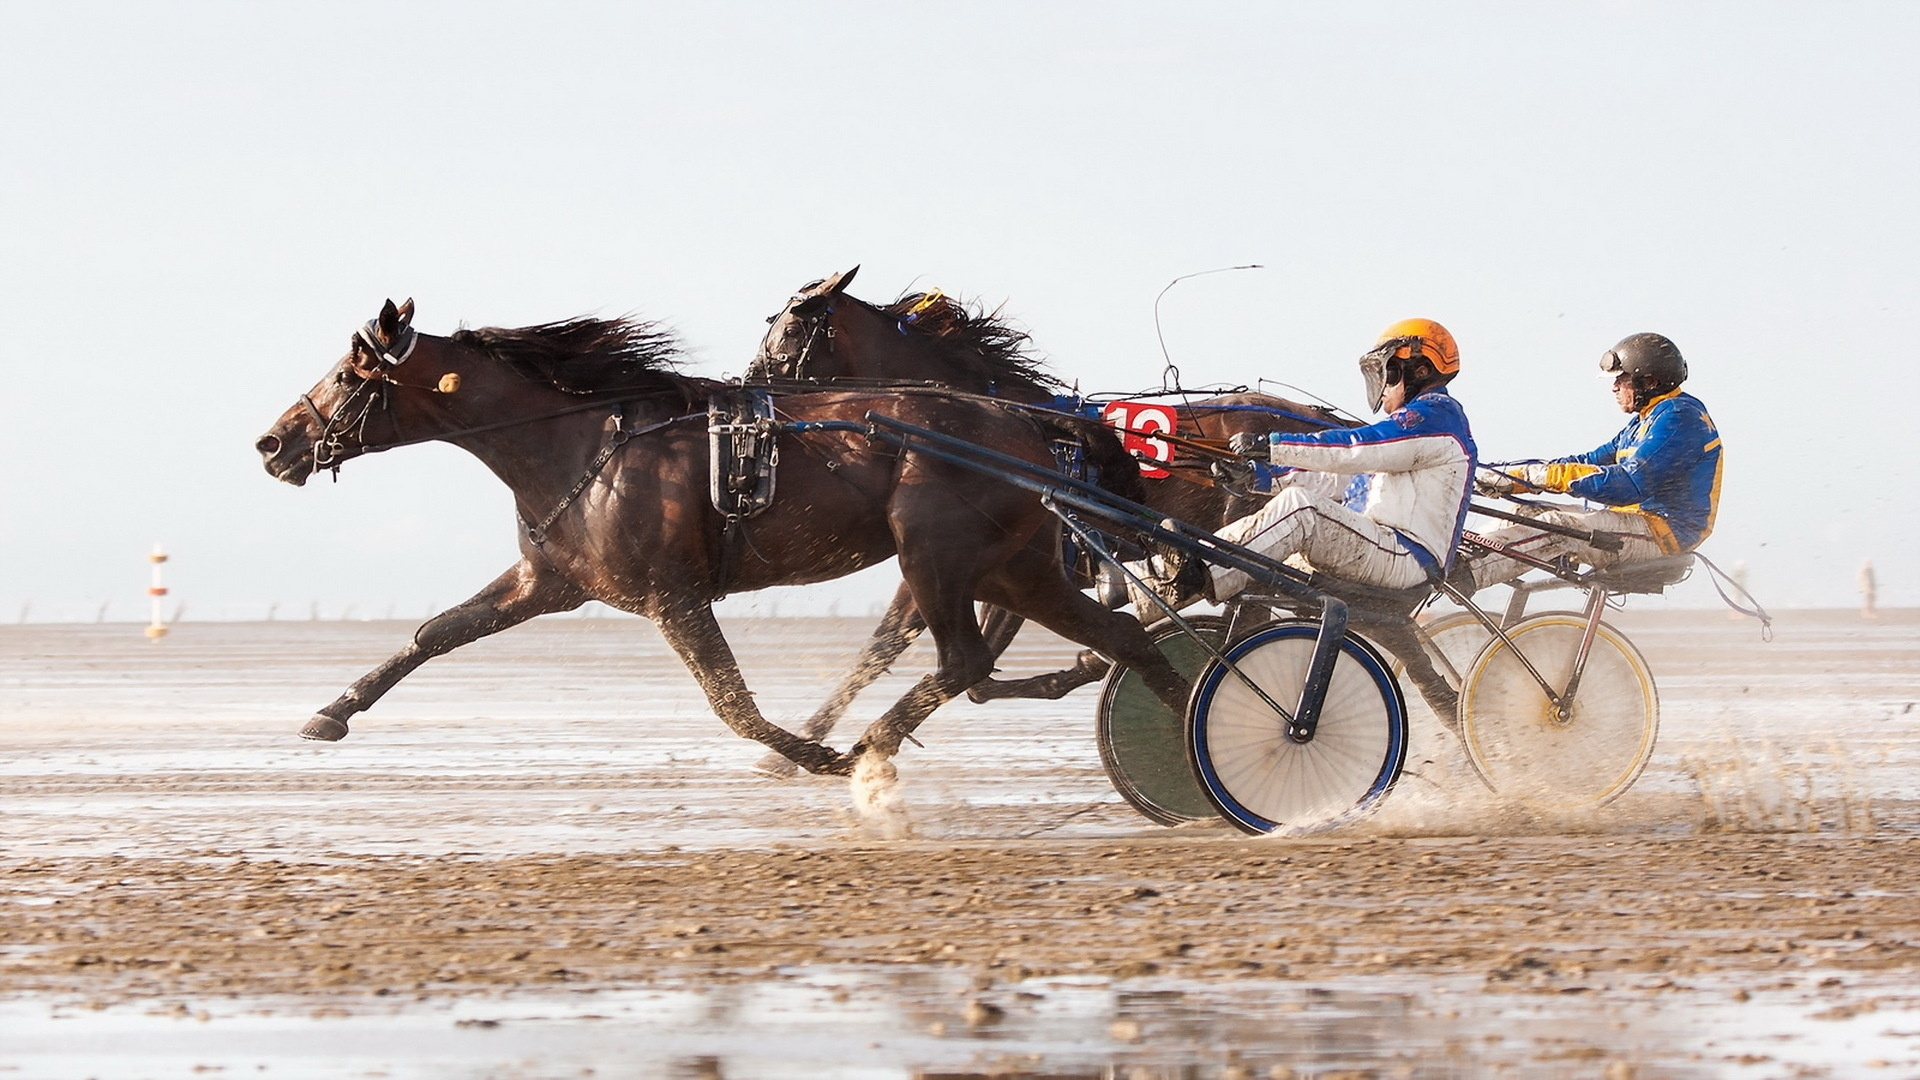 horse racing awesome hd wallpapers all hd wallpapers